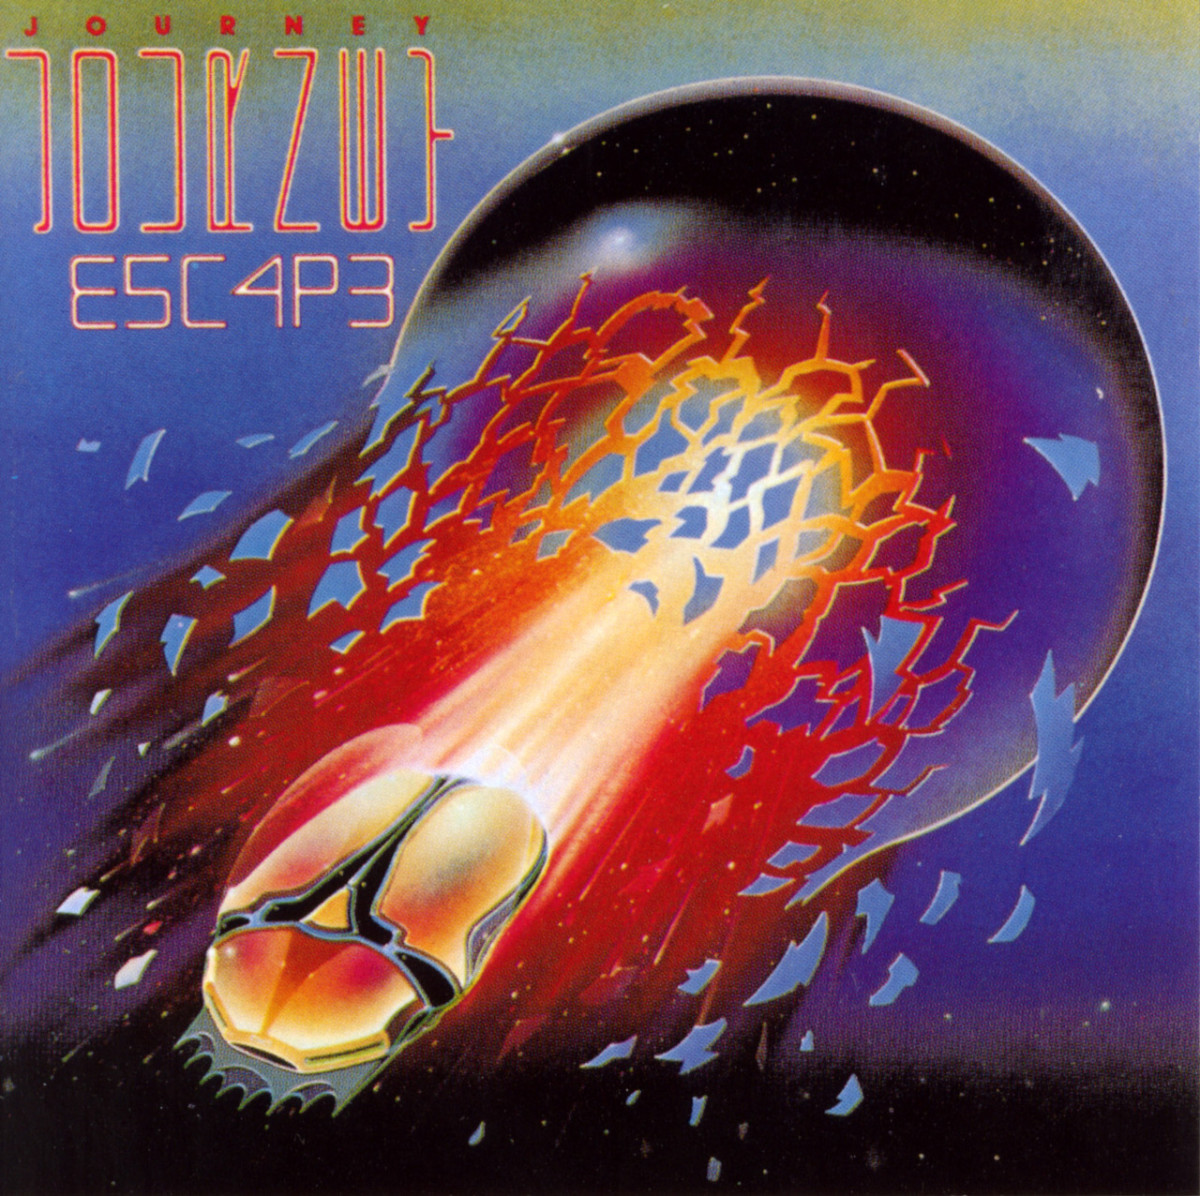 "Journey ""Escape"" 1981 Columbia TC 37408 12"" LP Vinyl Record US Pressing (1981) Album Cover Art by Stanley Mouse"